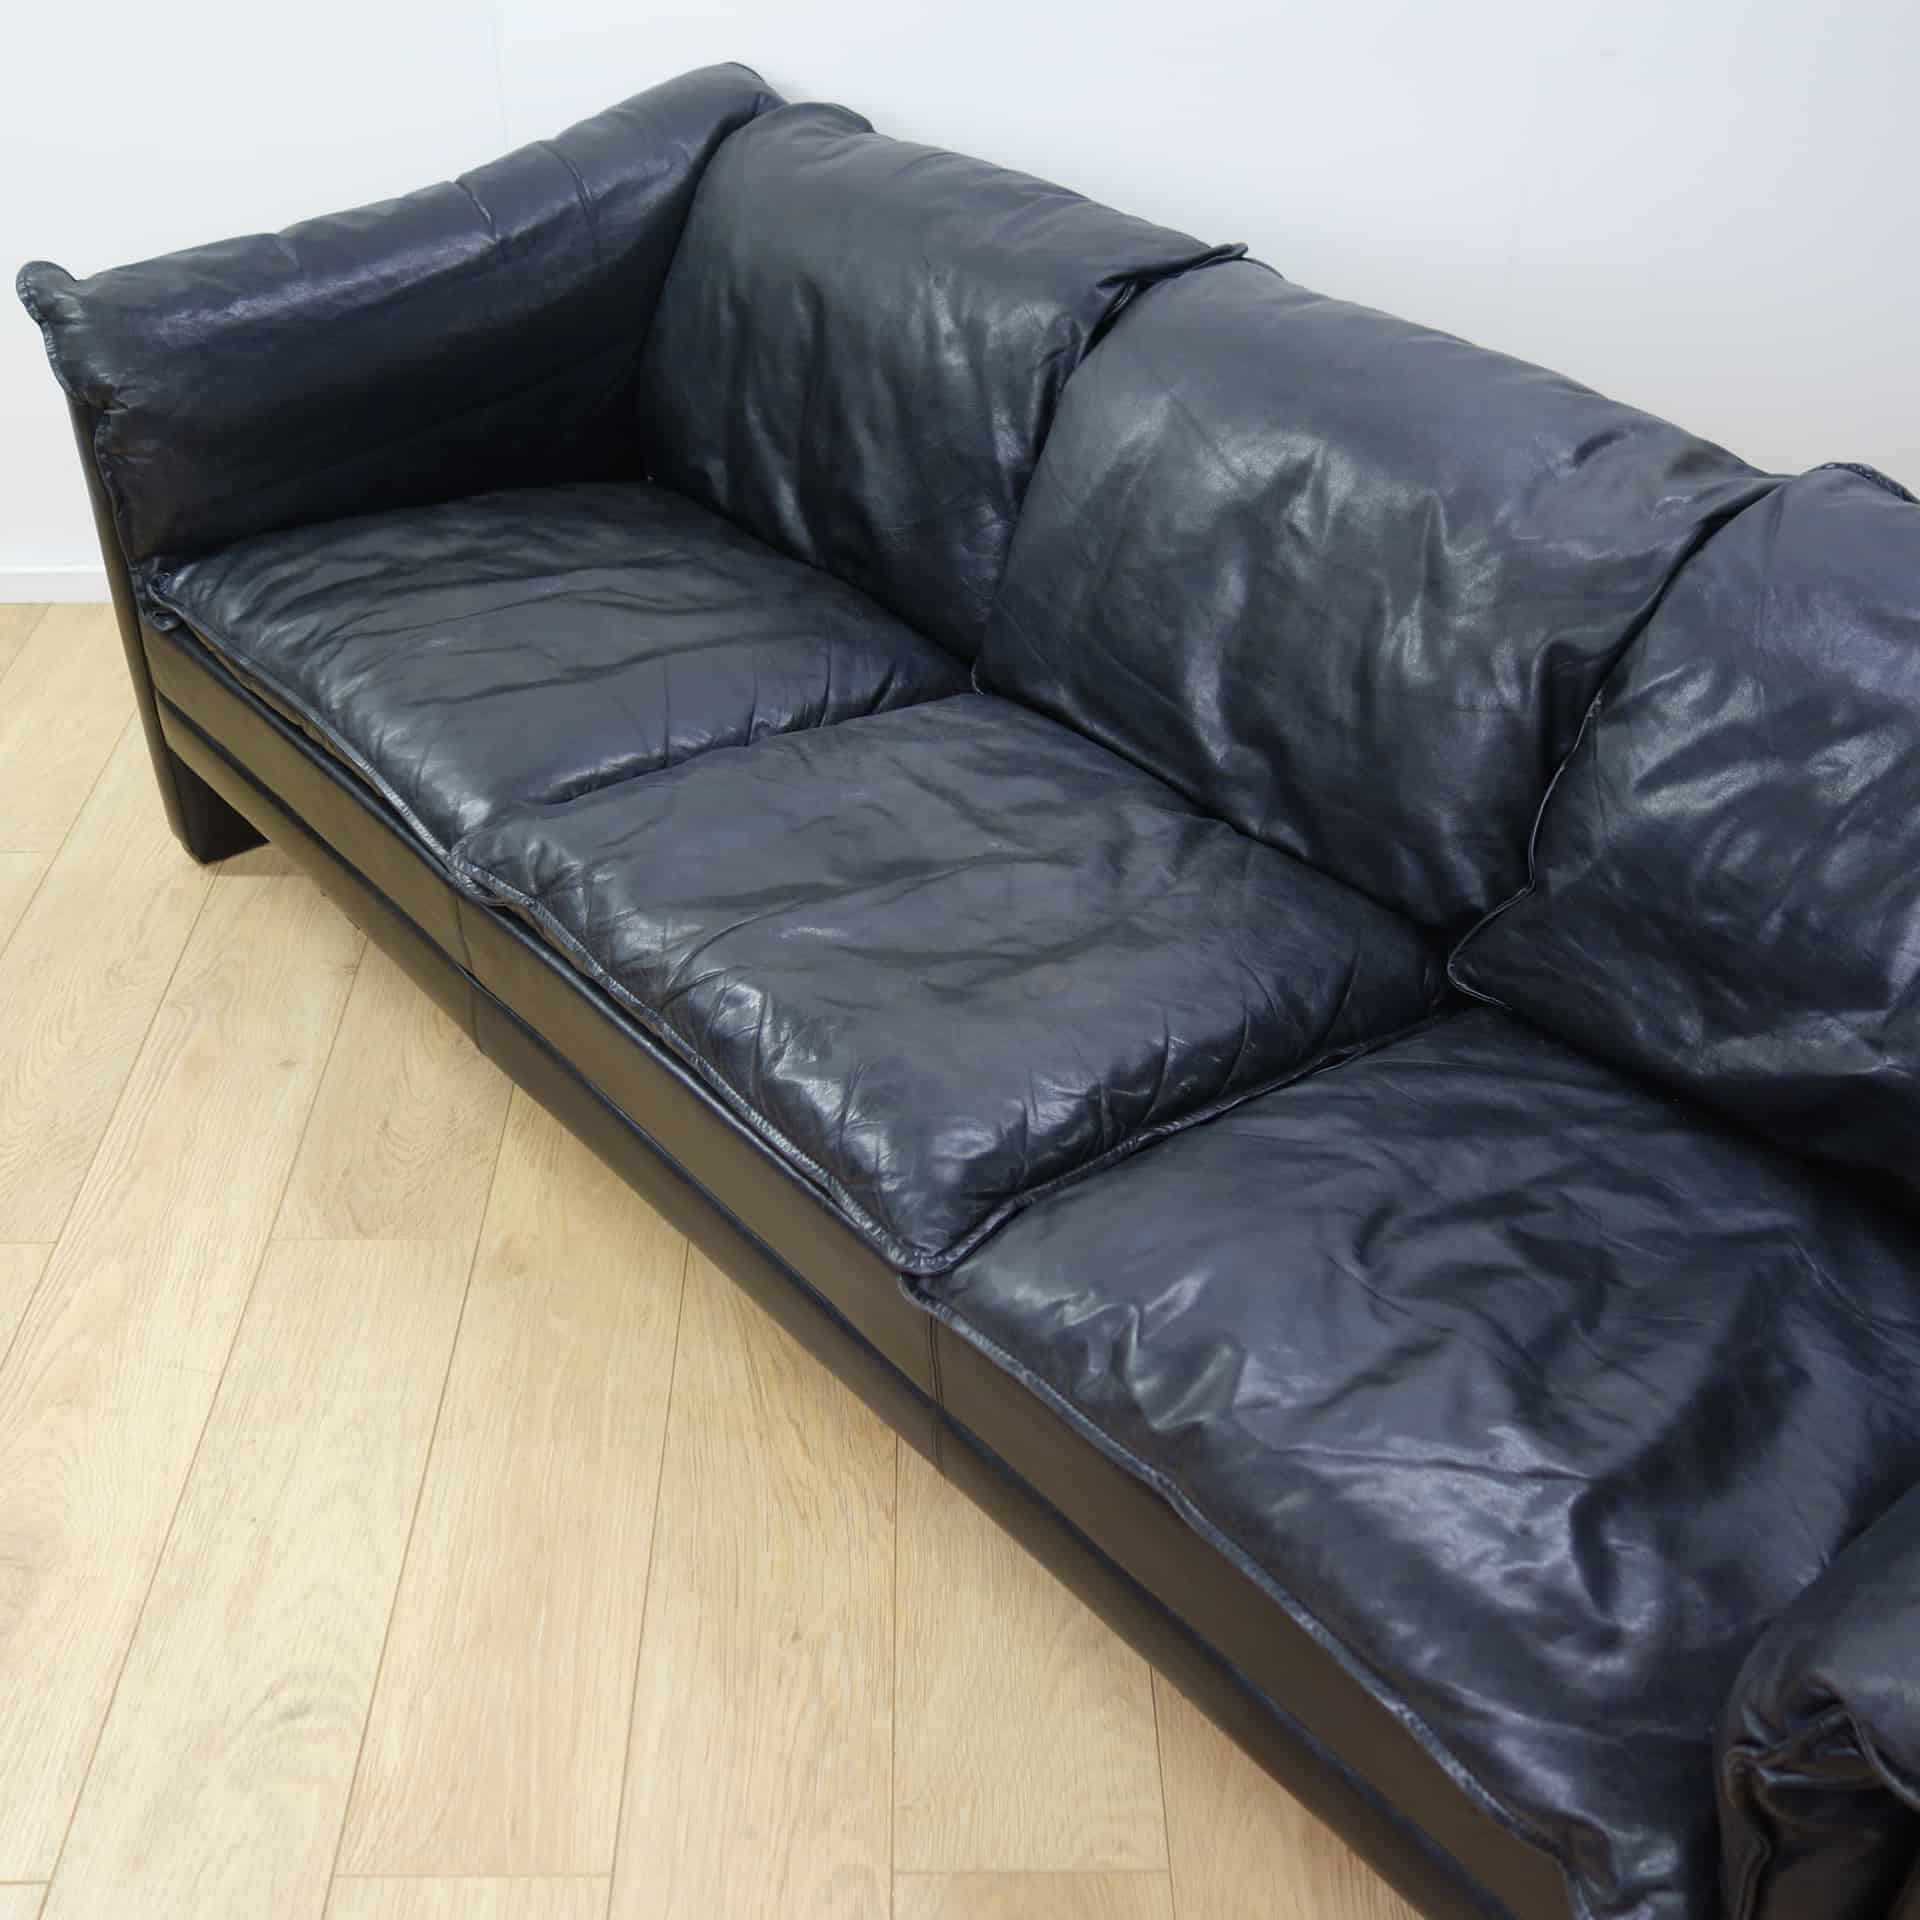 3 seater black leather sofa elliot bed at target danish mark parrish mid